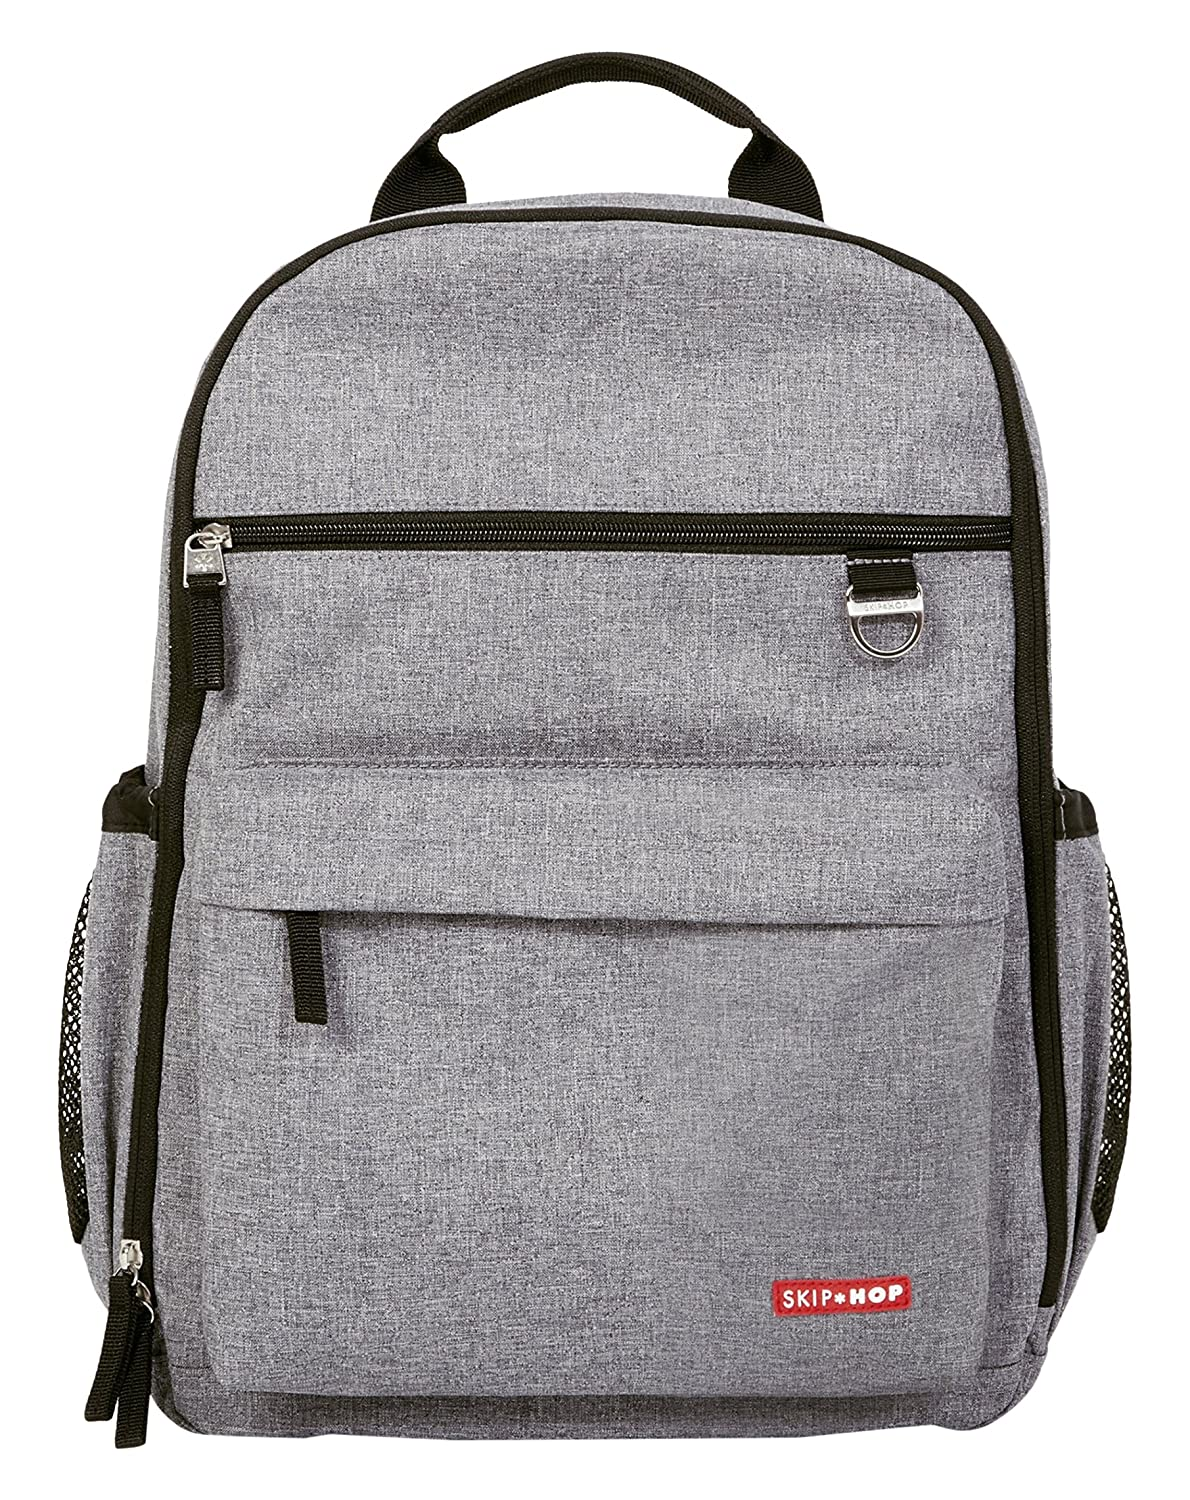 Skip Hop Duo Diaper Backpack, Grey: Amazon.ca: Bébés